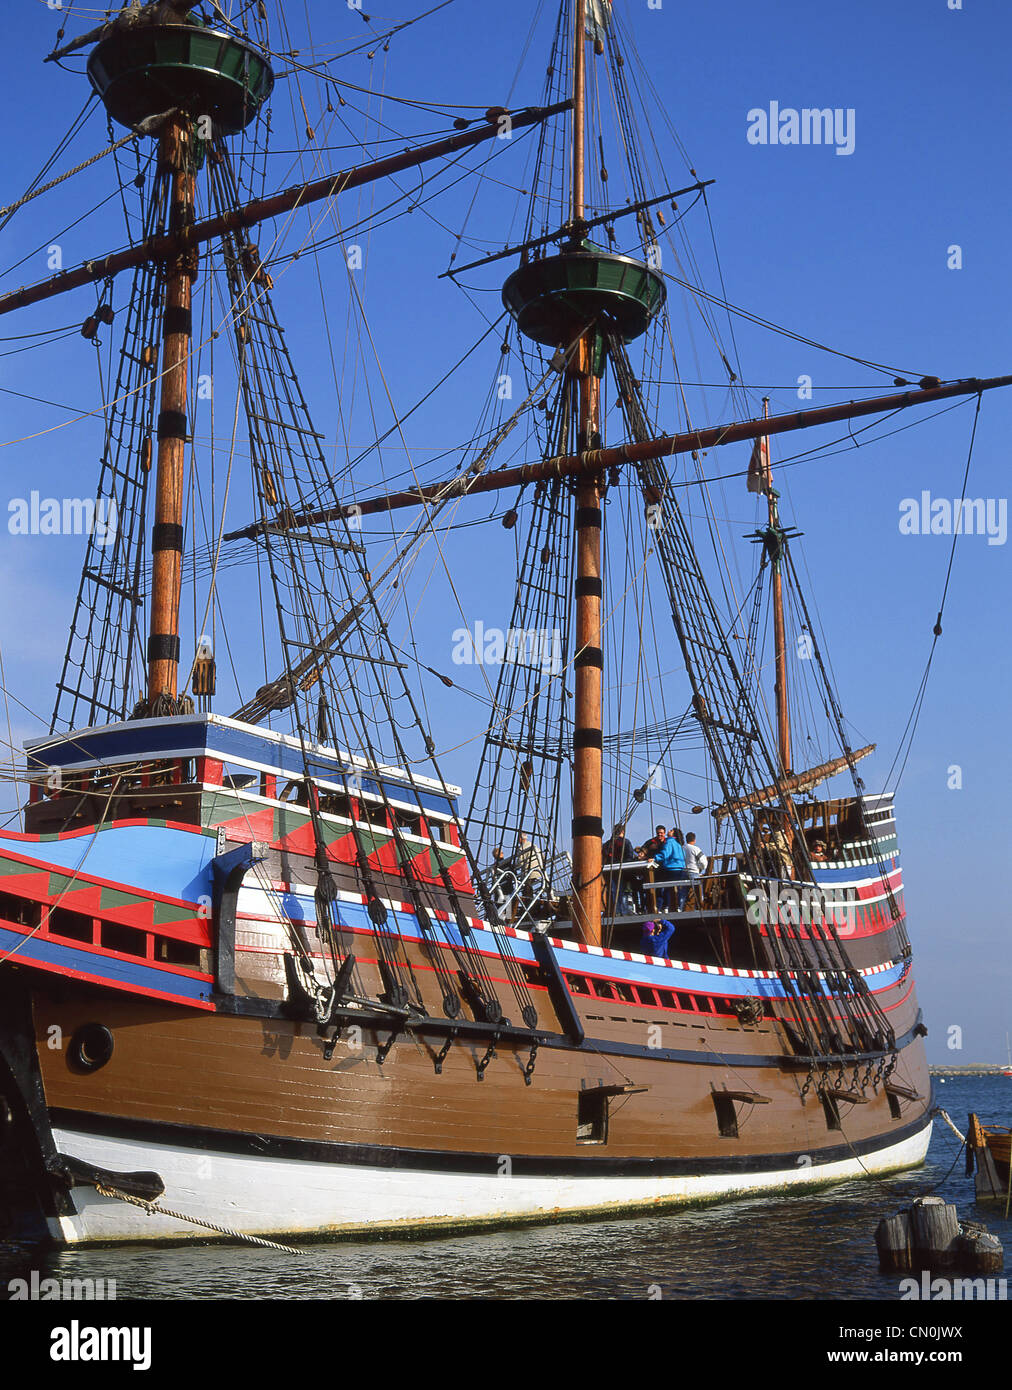 Mayflower II replica ship, Plymouth Rock, Plymouth Harbor, Plymouth, Massachusetts, United States of America - Stock Image